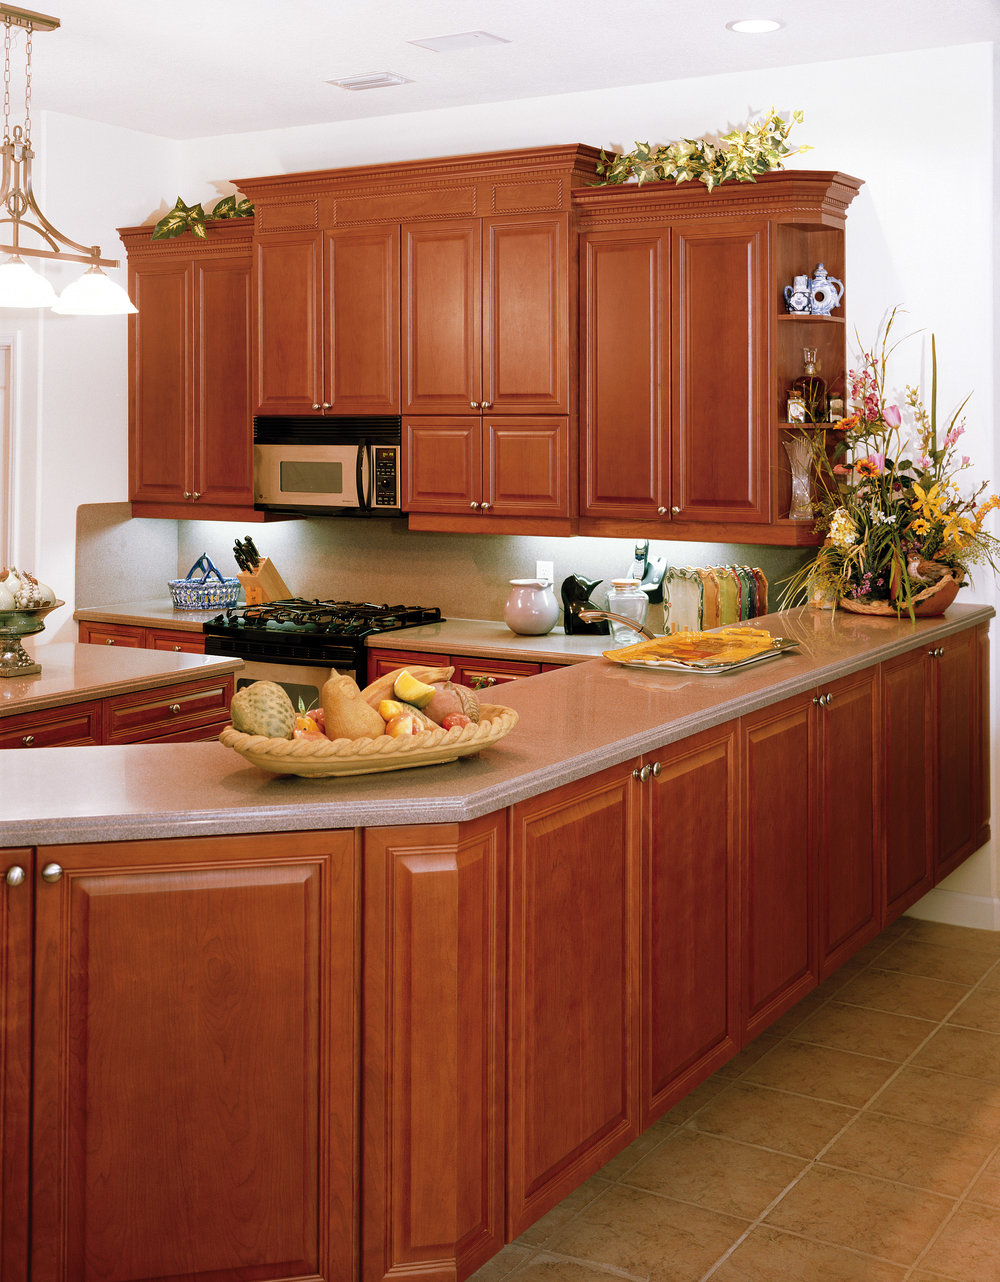 NOTI KITCHEN & BATH107.jpg